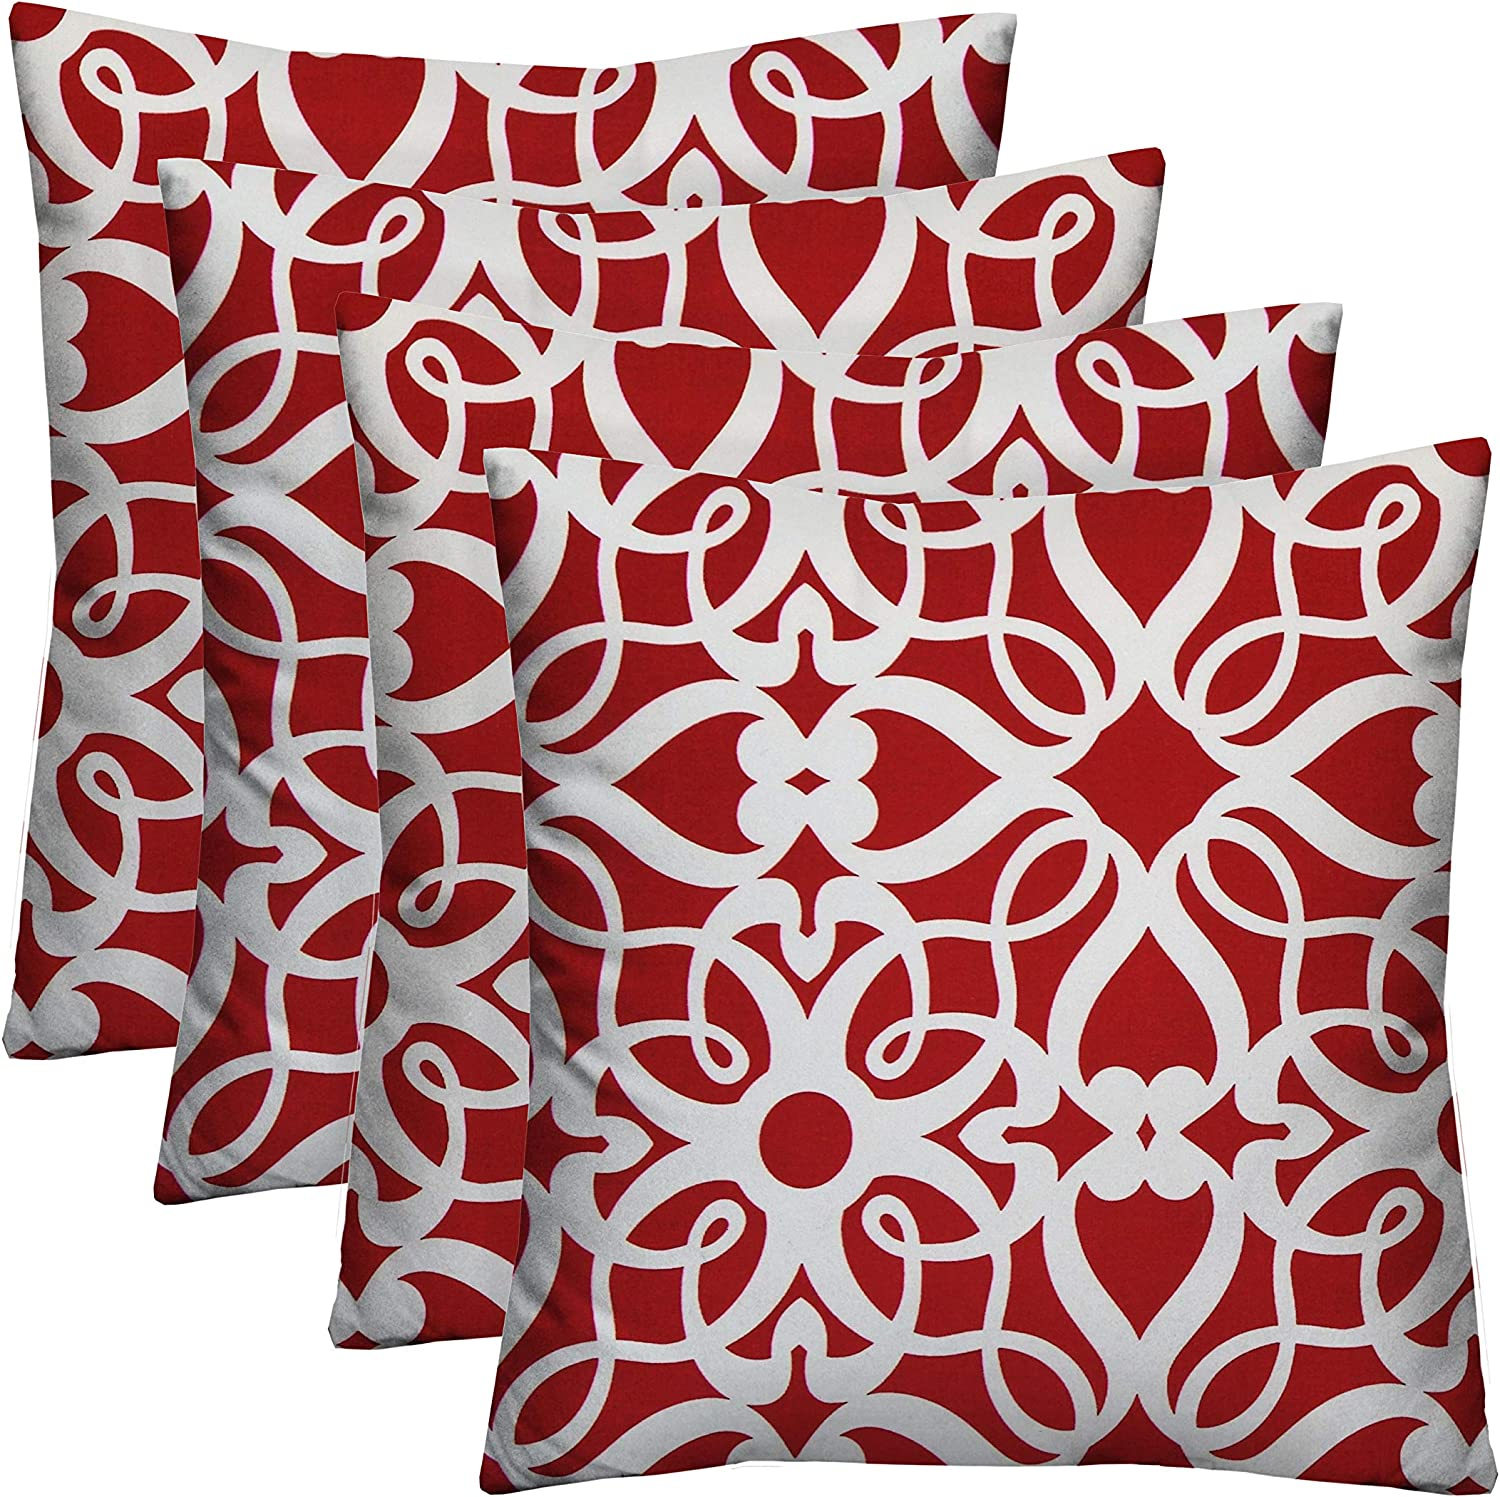 RSH D cor Set of 4 Indoor Outdoor Square Throw Toss Pillows Red and White Scrolling Hearts